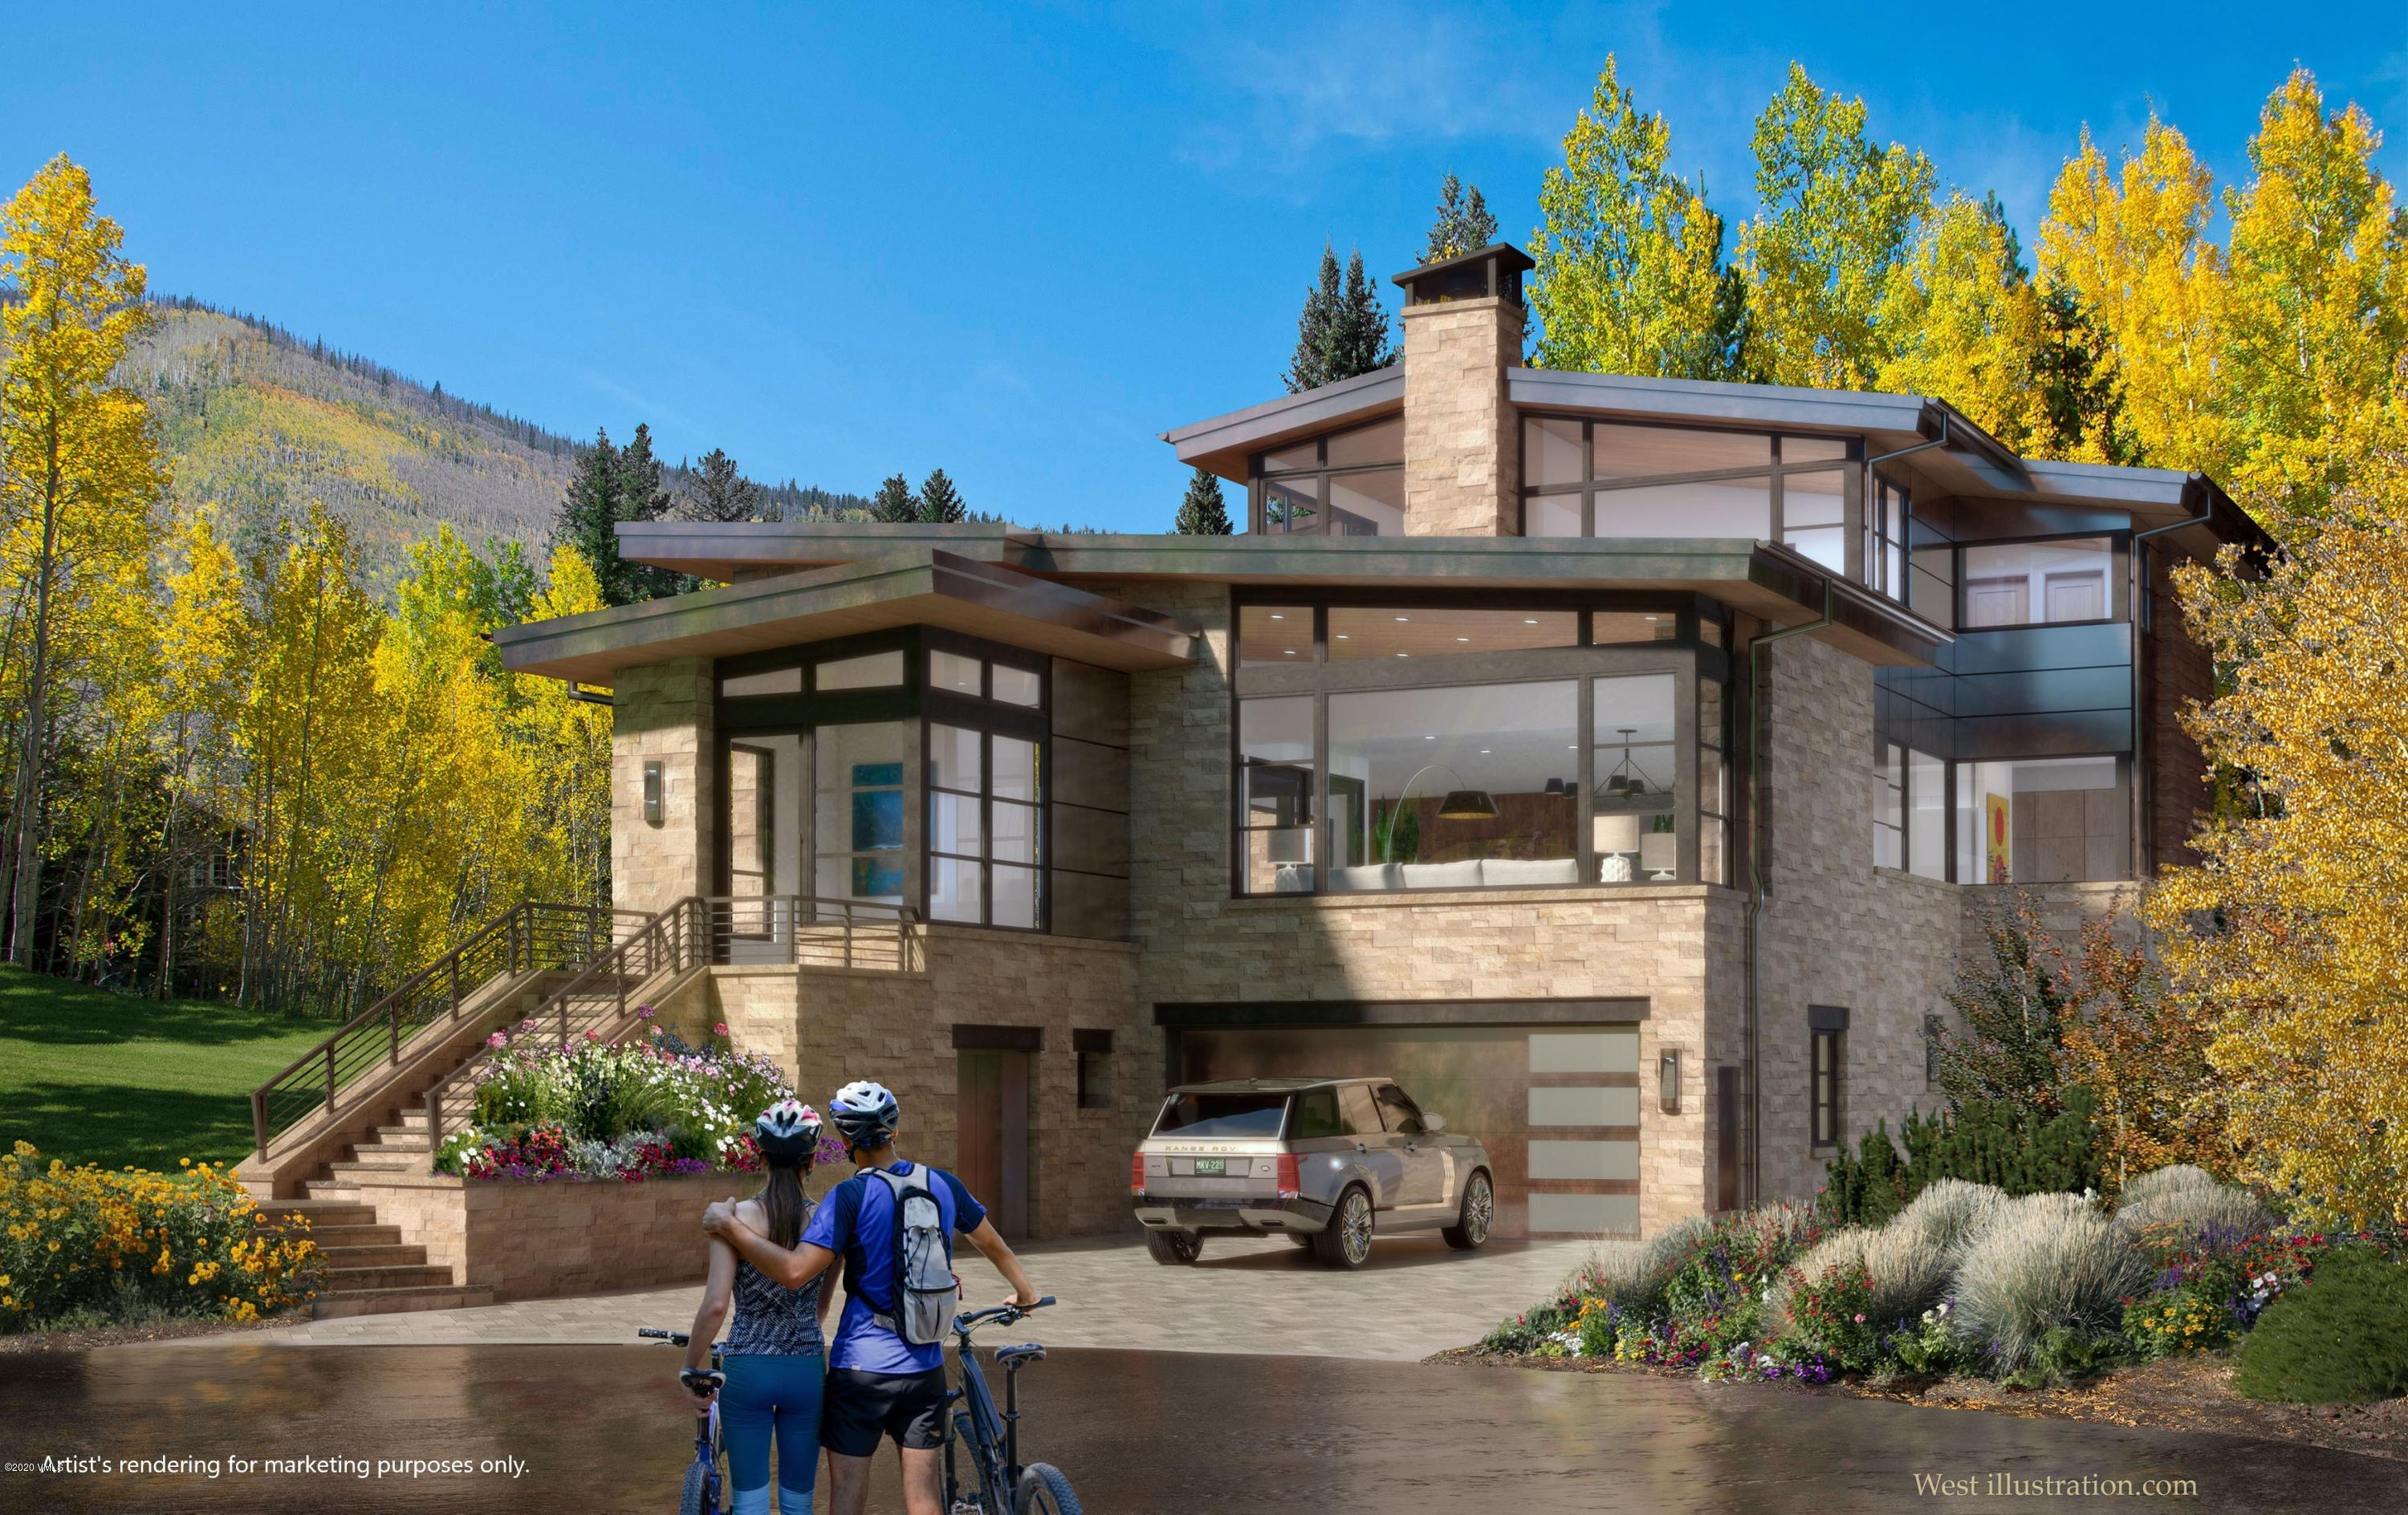 Turnipseed Architecture and Construction develops another new construction trophy home. Located on the prestigious and private Hornsilver Circle and convenient to Vail Village. Stunning soft contemporary design with sun-filled rooms, featuring 7 bedrooms all with en-suite baths. Expansive and thoughtful floor plan with an open grand great room, kitchen and dining room with an adjacent hearth room and spacious walk-in pantry on the main level with a large deck and perfect southerly views of the surrounding mountainside and ridge lines. Private upper-level primary suite featuring picturesque Gore Range views with a study, sitting/hearth area, stone fireplace, custom closet with laundry and beautiful bathroom. Spacious lower-level family room with wet bar perfect for family gatherings and apres-ski entertainment. Residence has air conditioning; elevator; laundry on all levels; heated driveway with over-sized exterior parking; copper roof; large side yard with sunken hot tub; beautiful landscaping. Estimated date of completion, Spring 2021.